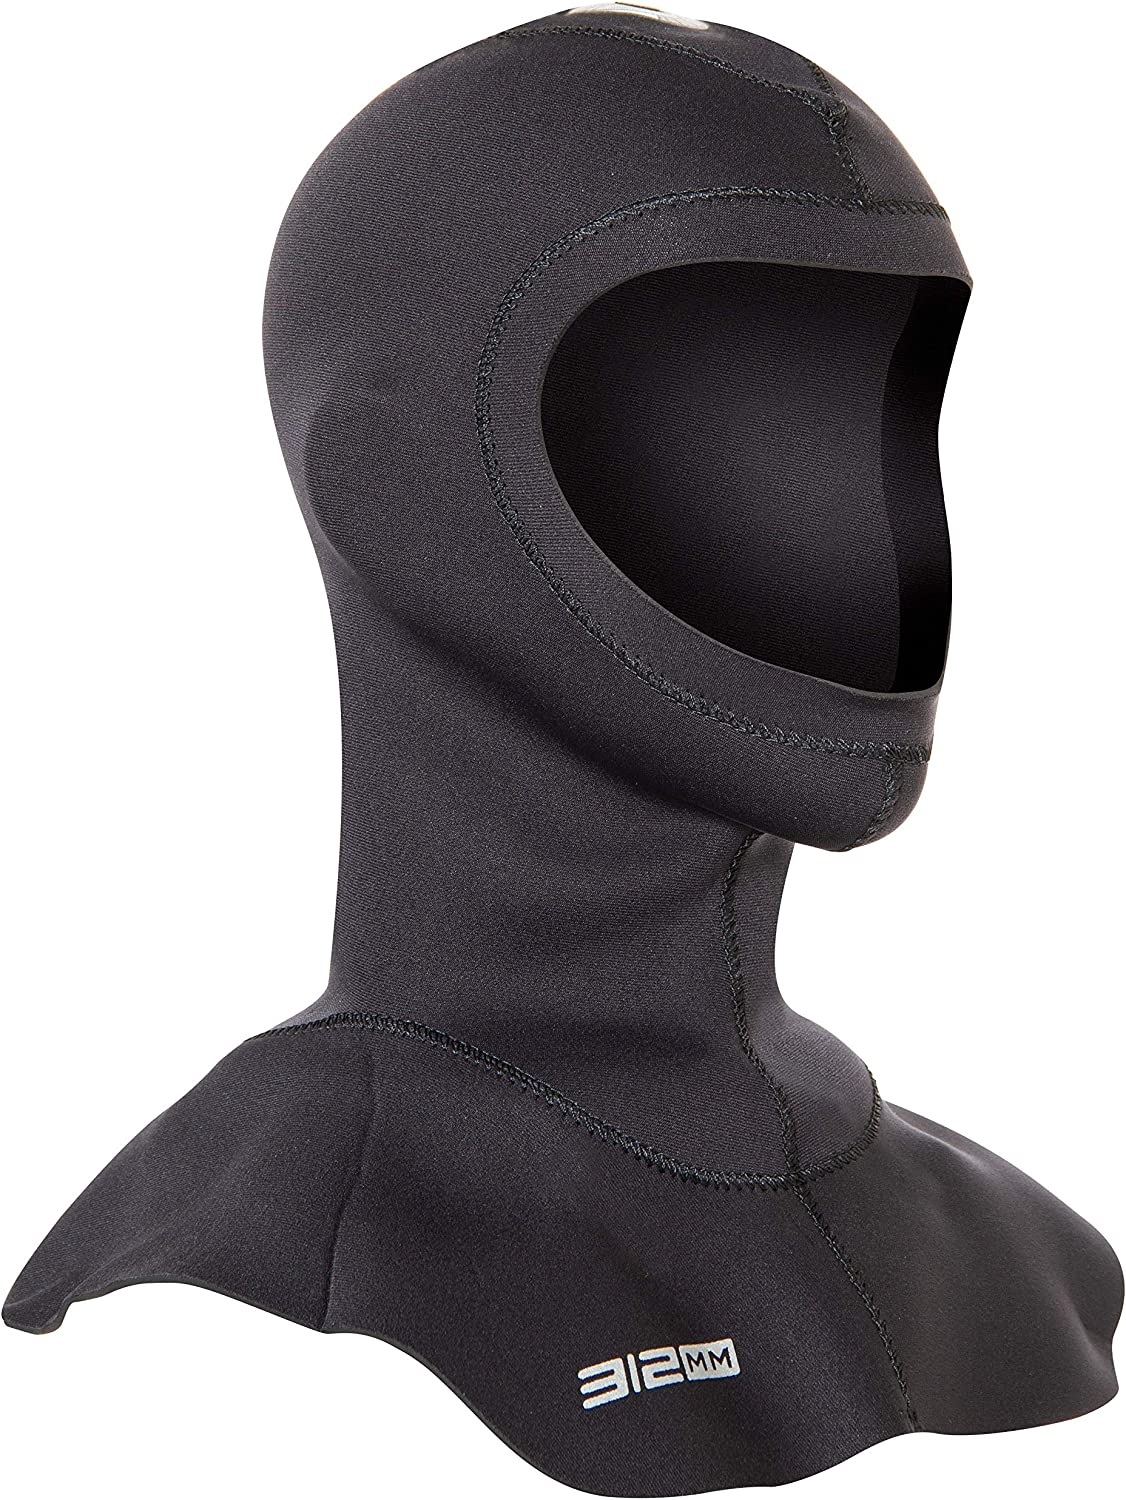 Neo Sport Multi-Density Wetsuit Hood available in three thicknesses 3//2MM 5//3MM Anatomical fit Skin Neoprene face seal which can be trimmed by owner for a custom fit 7//5MM with Flow Vent to eliminate trapped air